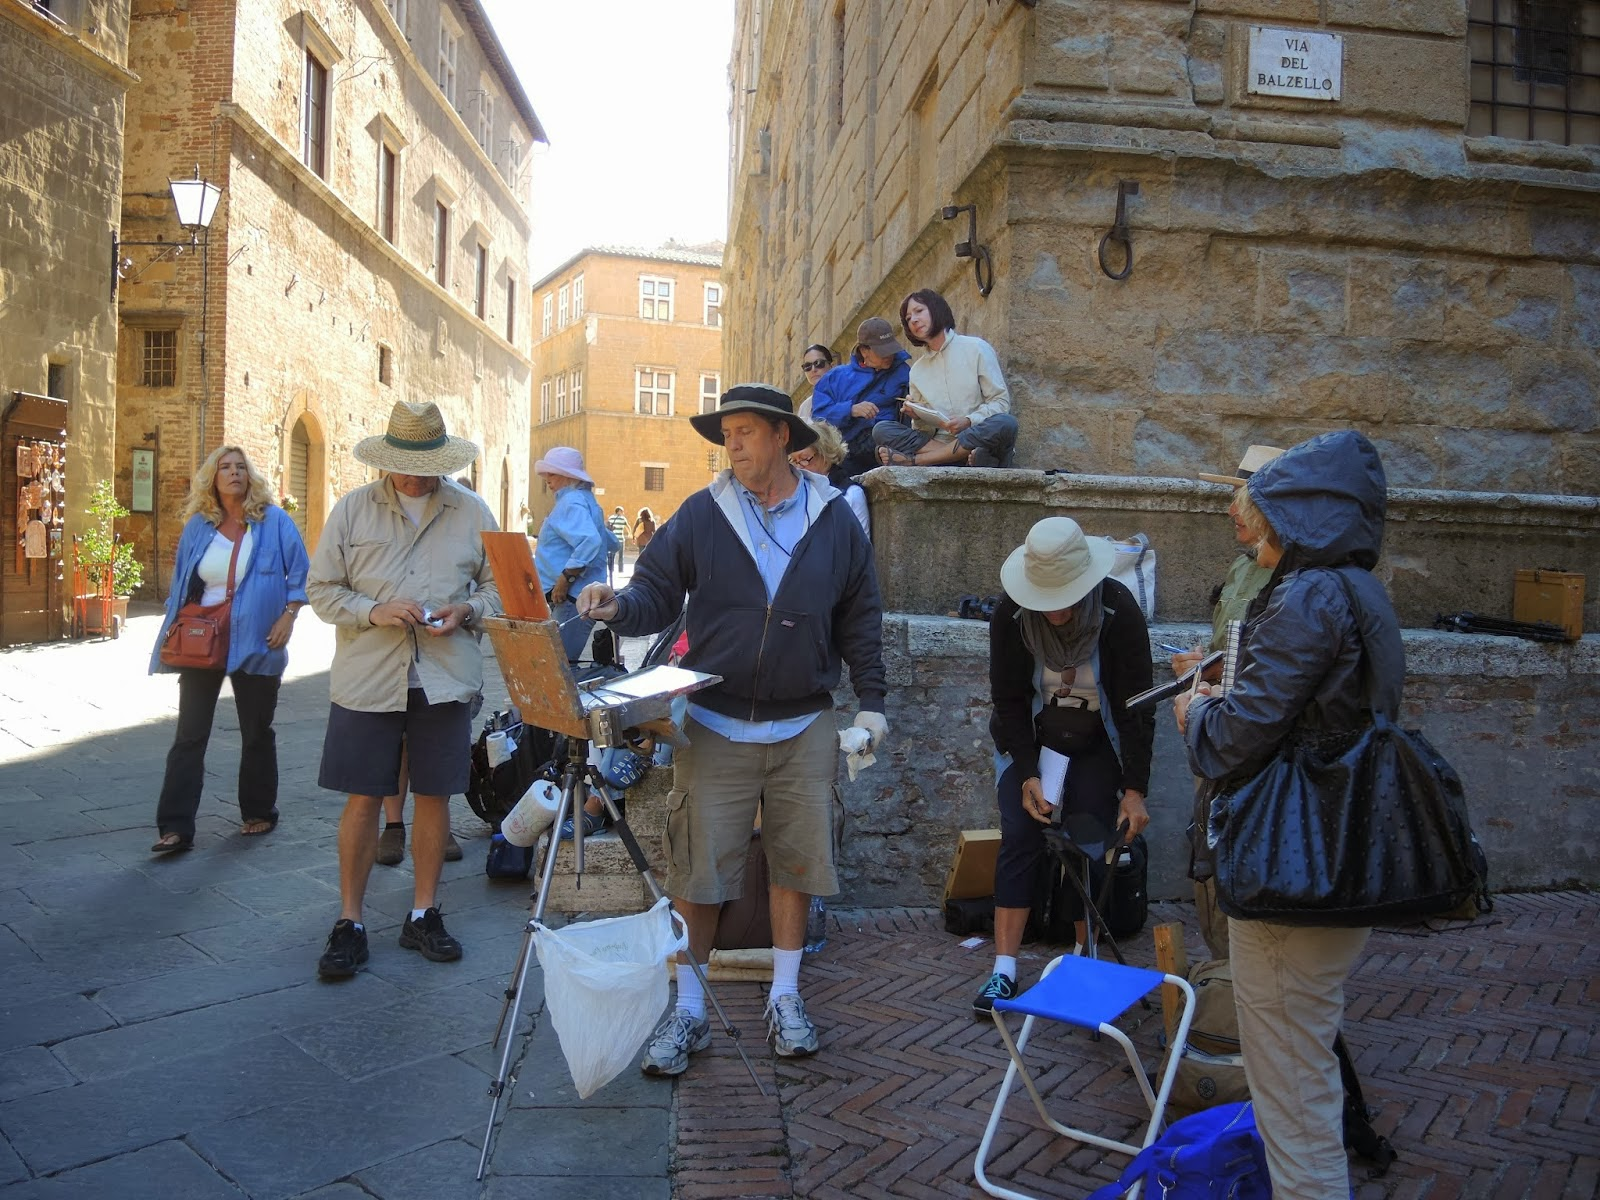 Carole Gray-Wiehman, Mark Fehlman, Ray Roberts in Plein Air Liaison Italy Workshop